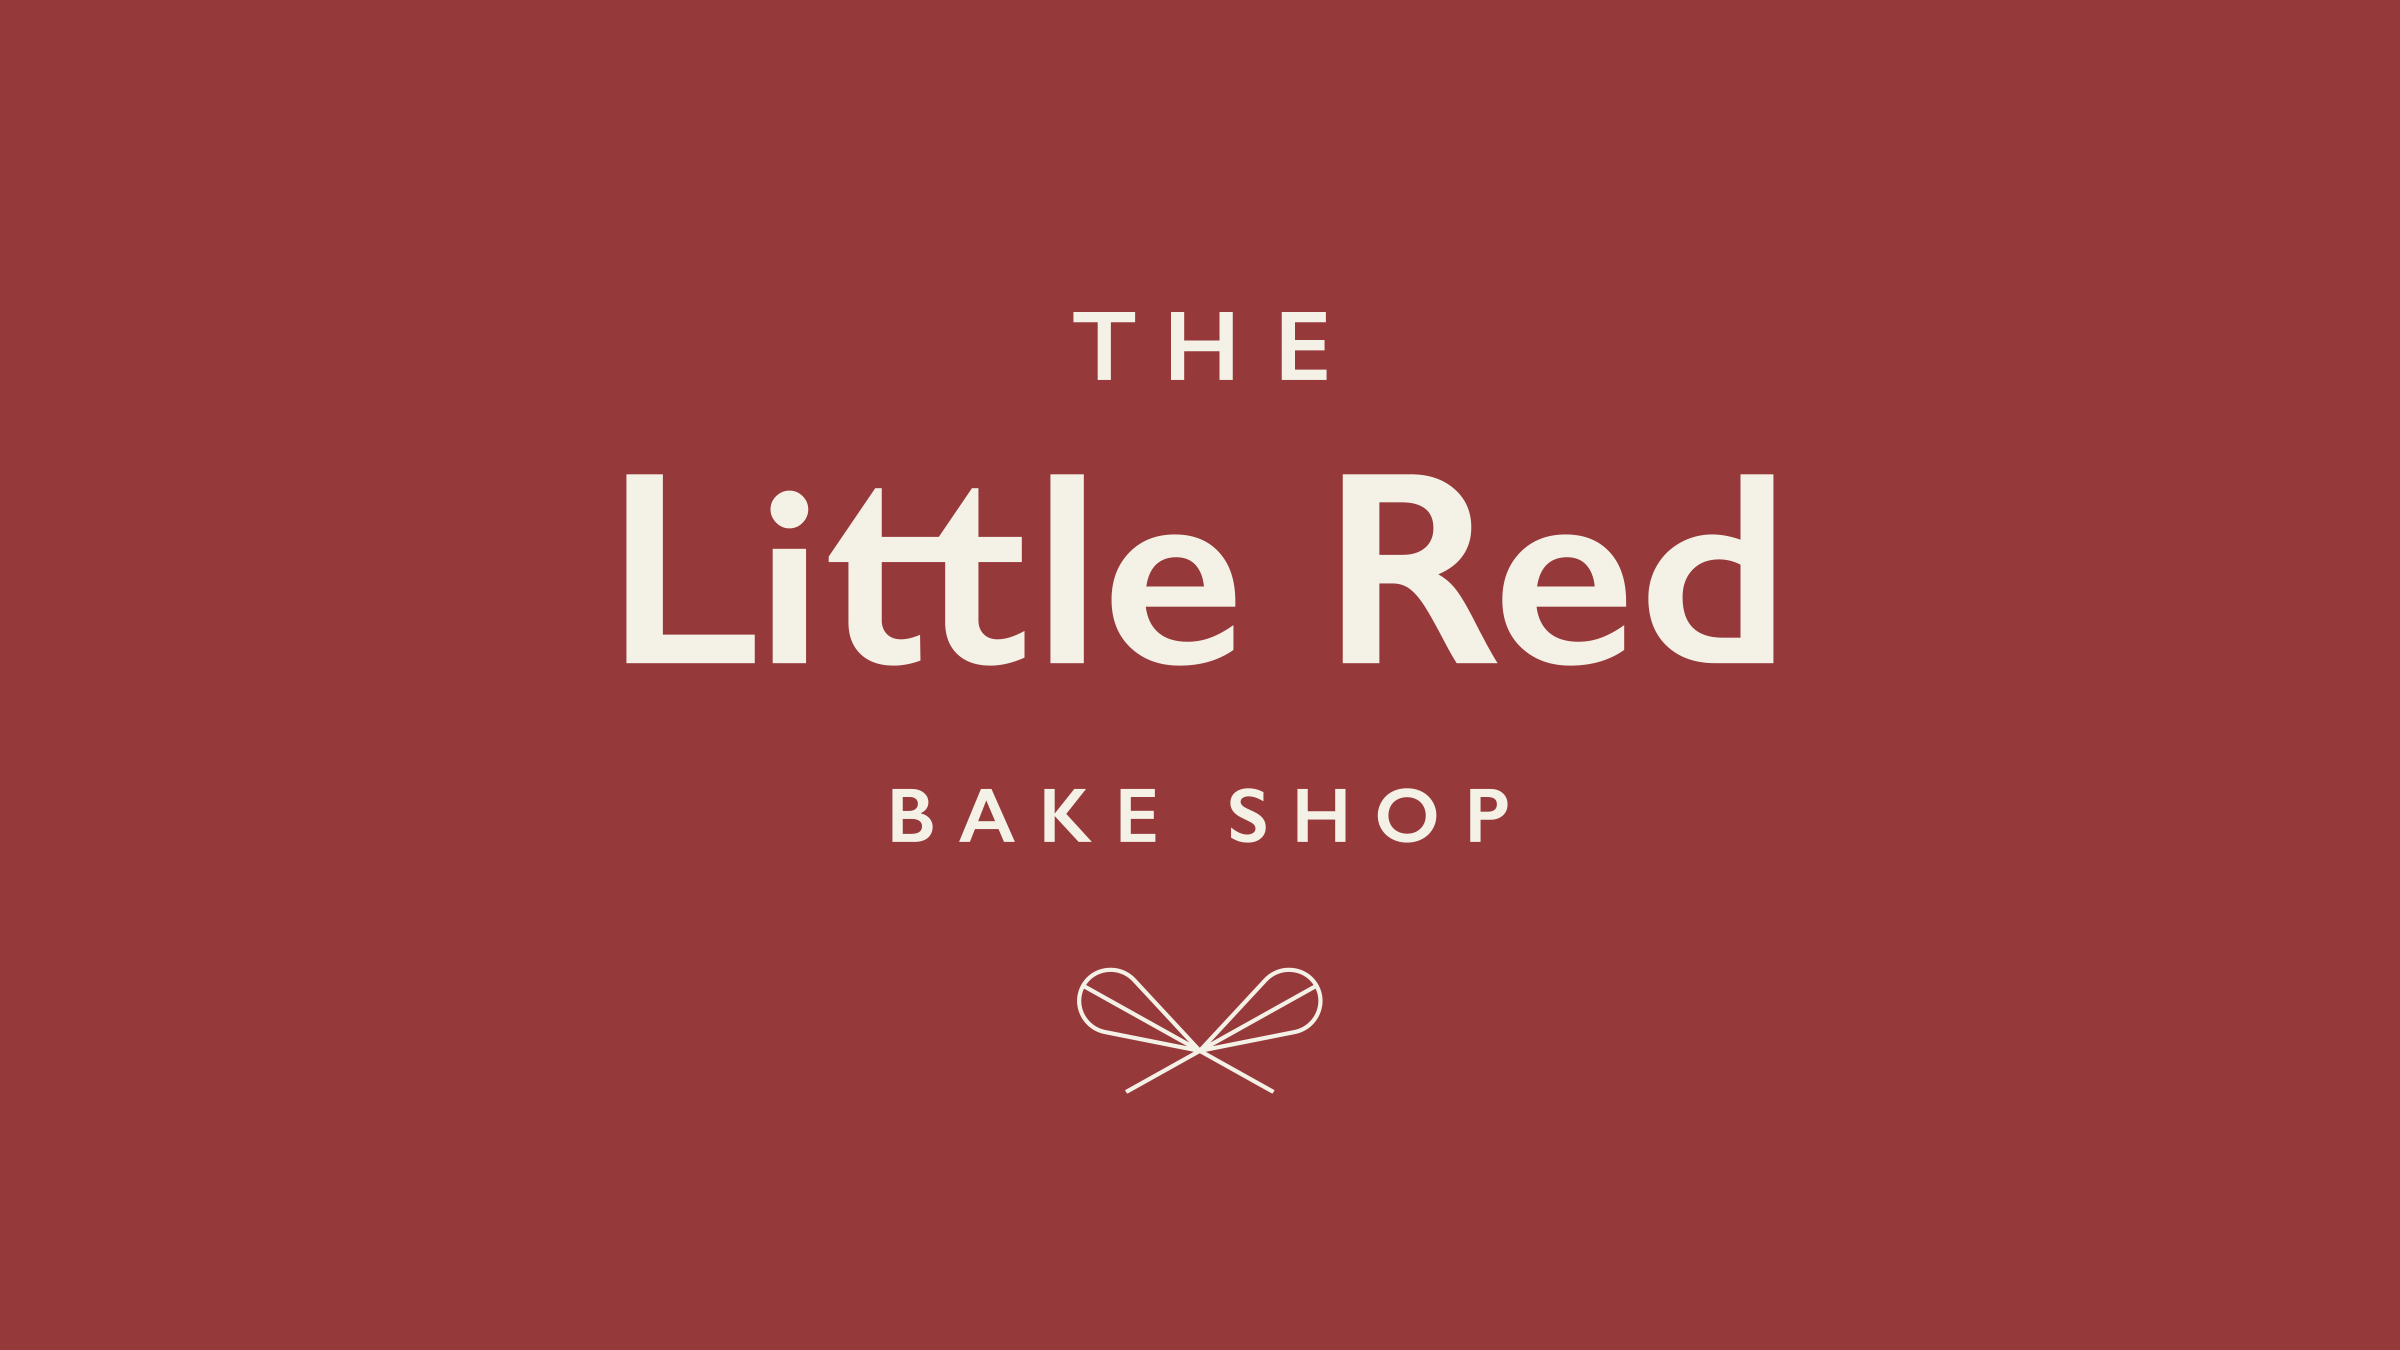 The Little Red Bake Shop brand logo cream on red